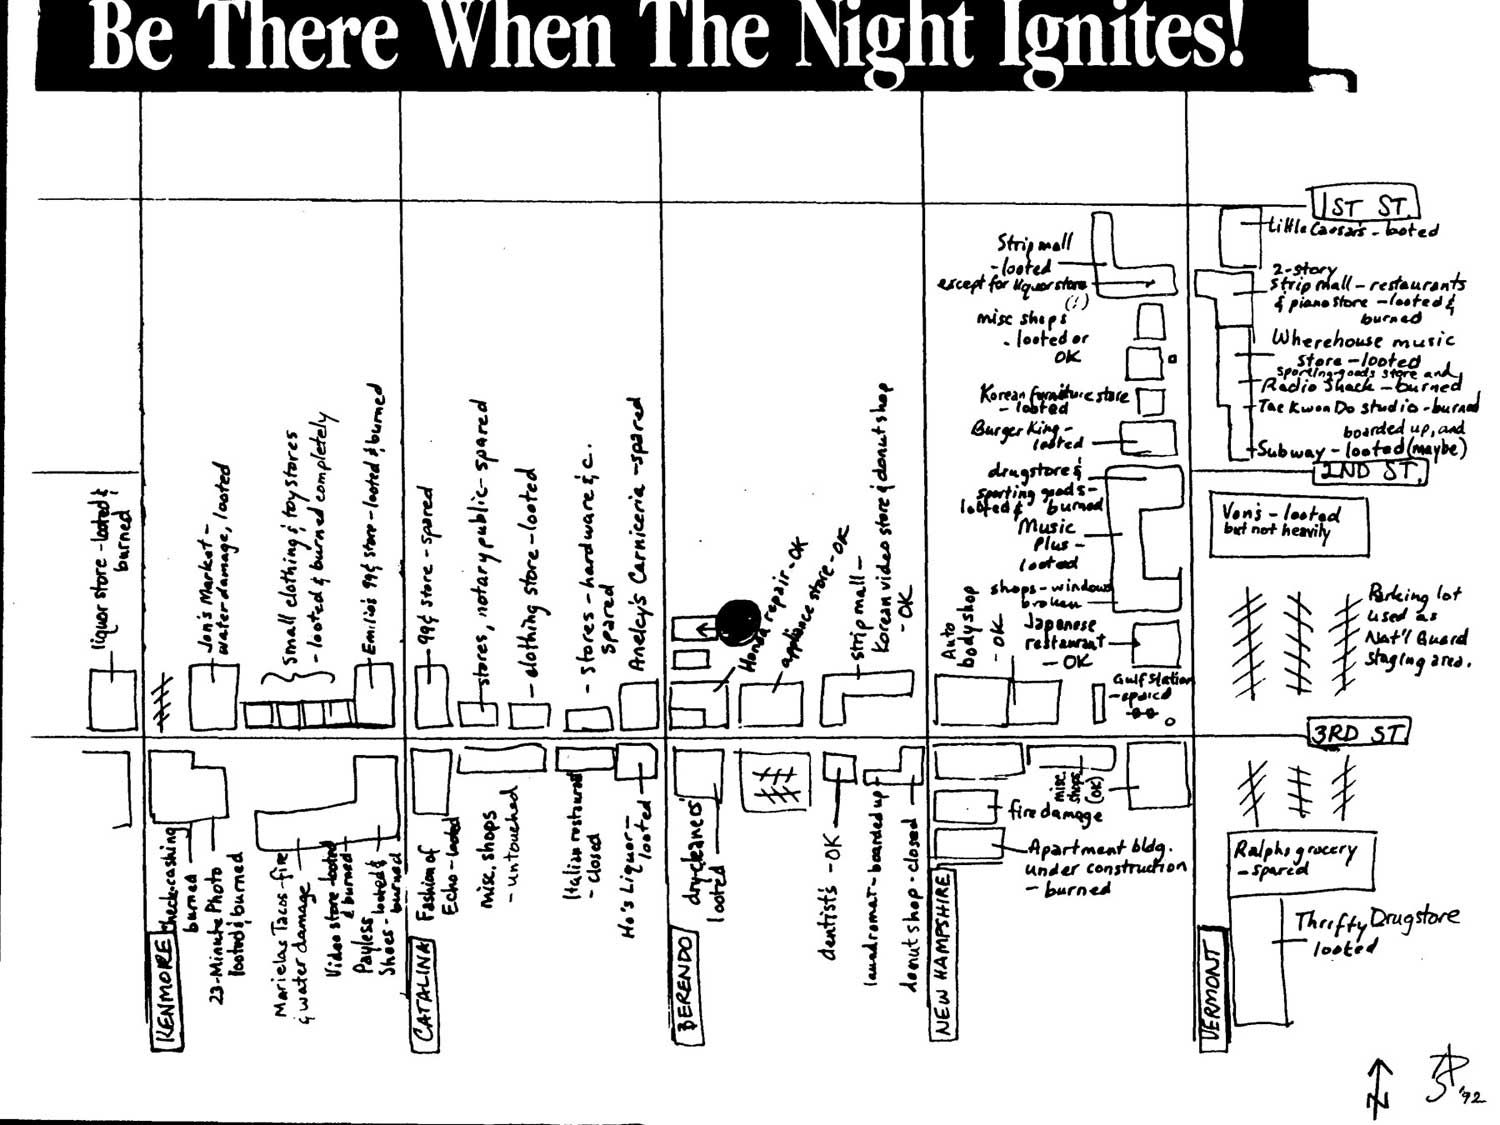 Mapping The LA Riots From Rodney King To Koreatown The Ojays - Los angeles k town map